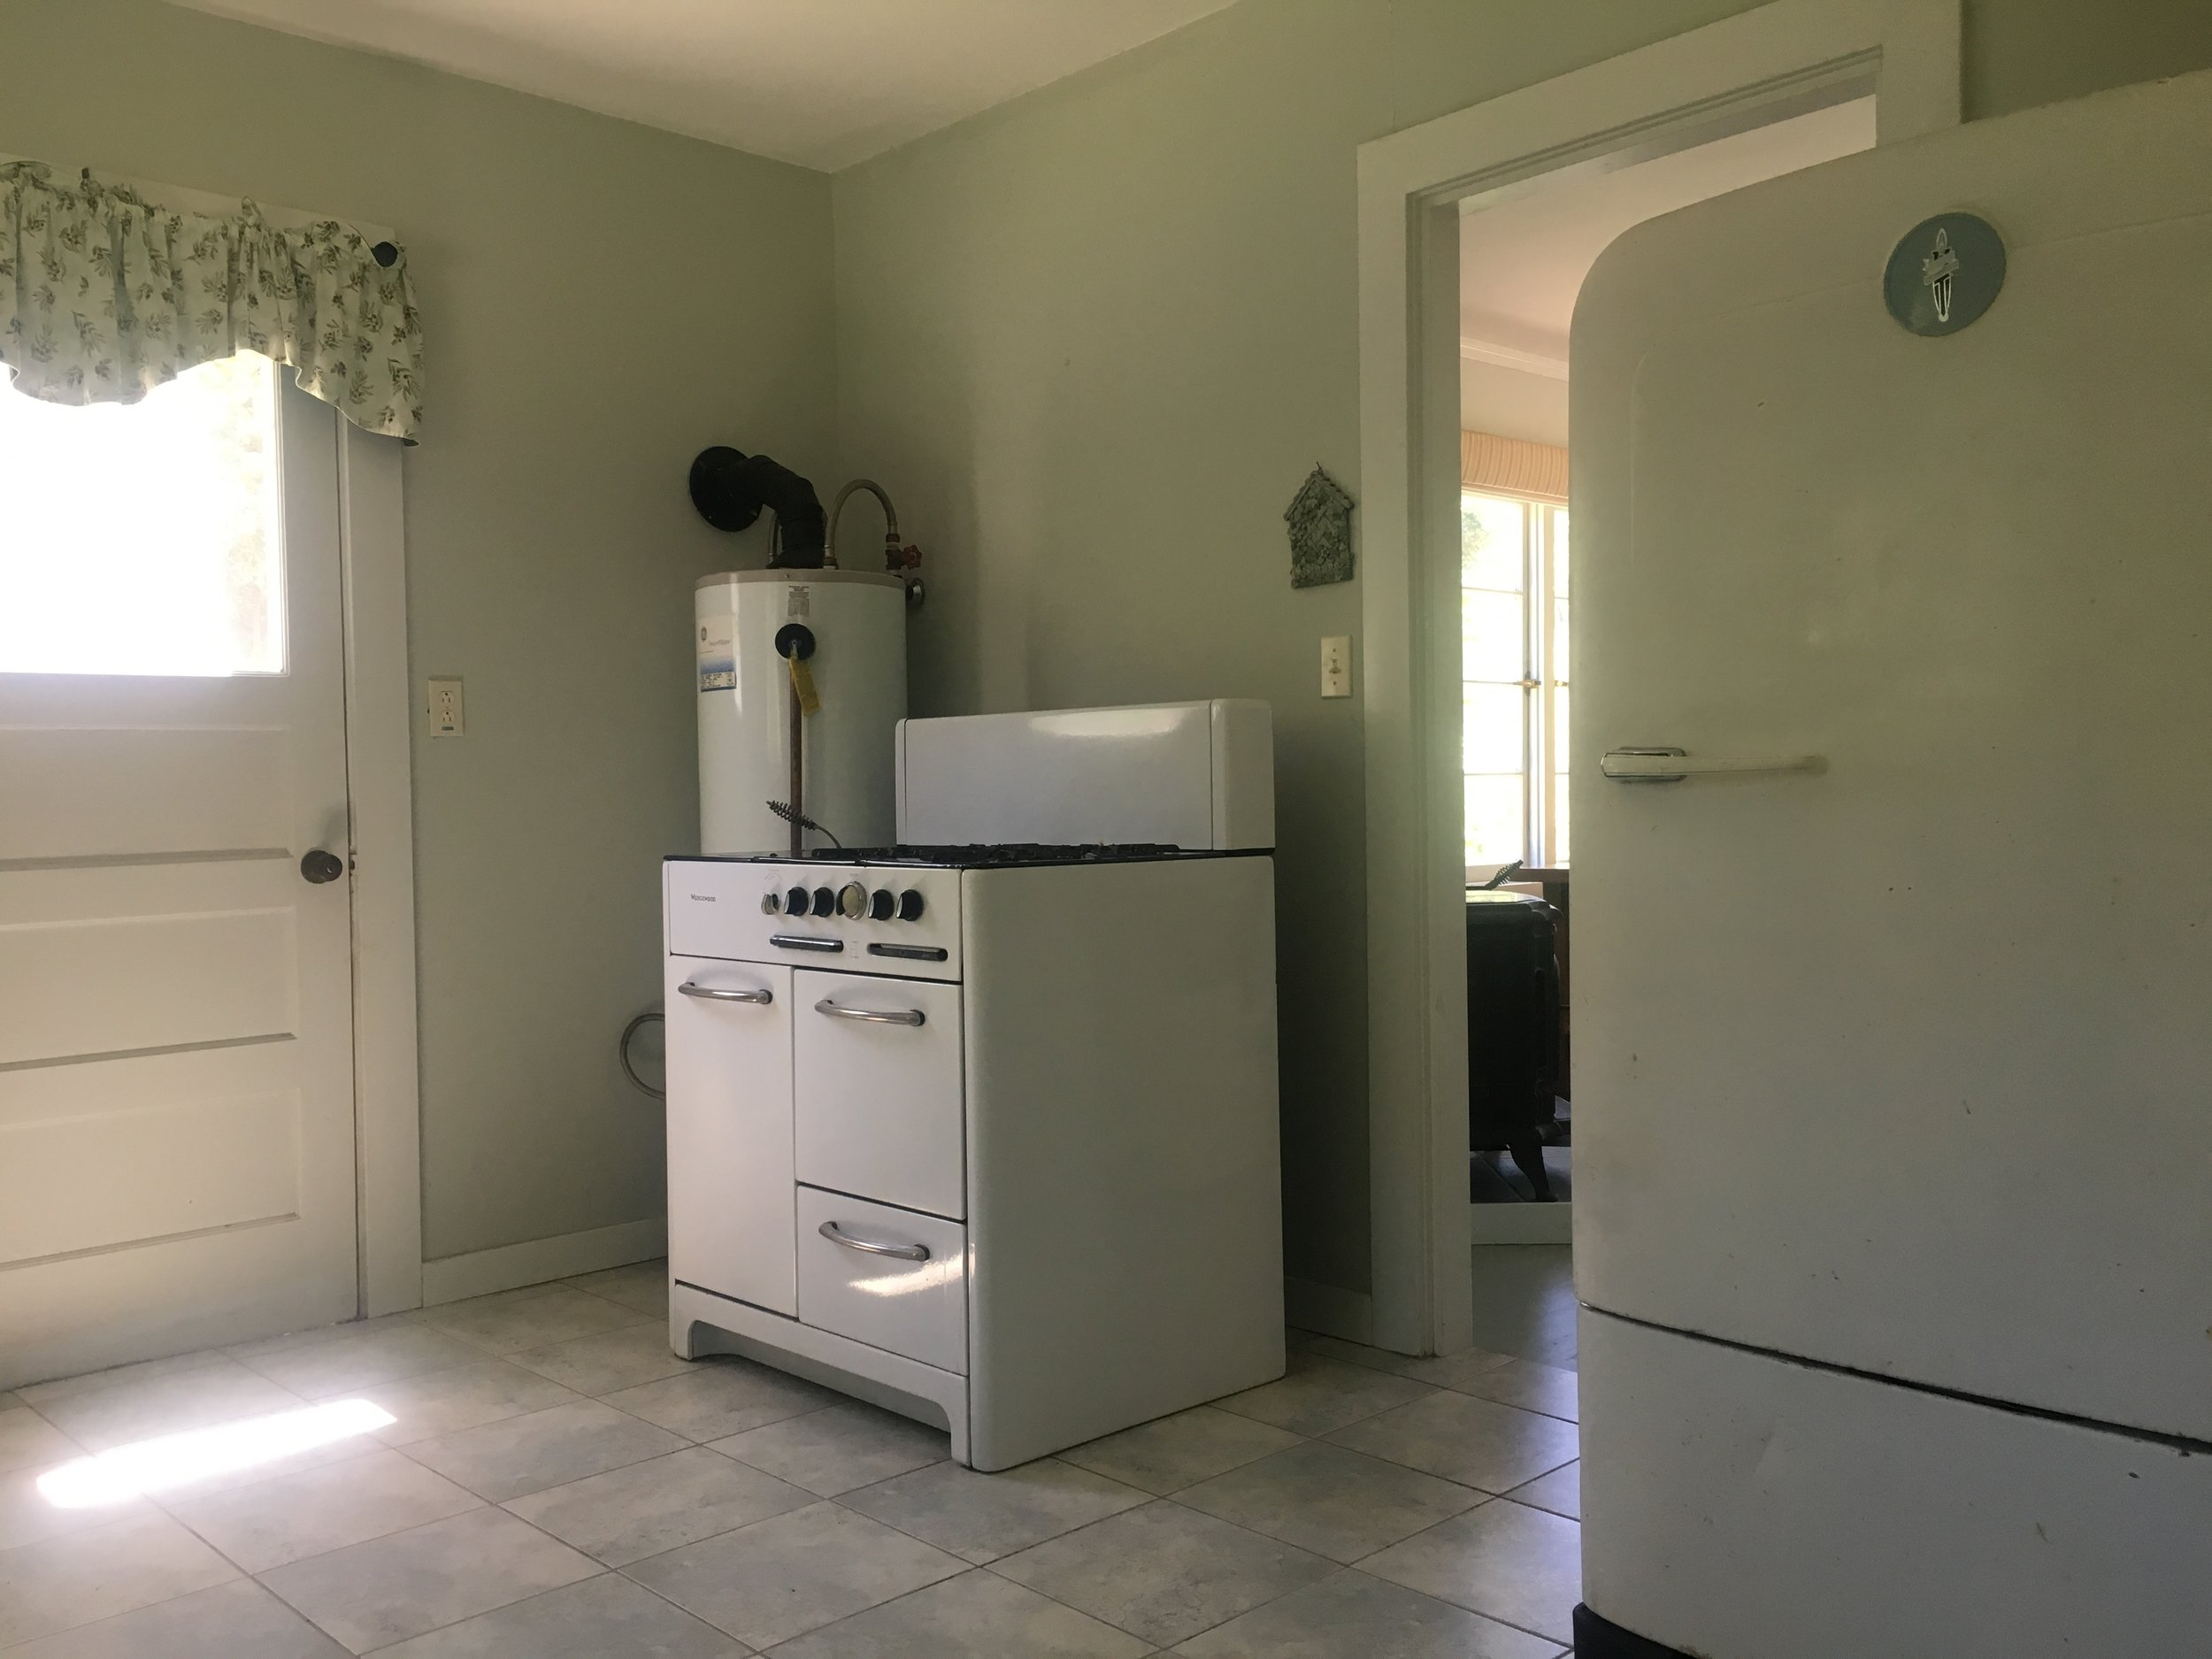 Kitchen in the cabin for sale in Yorkville.